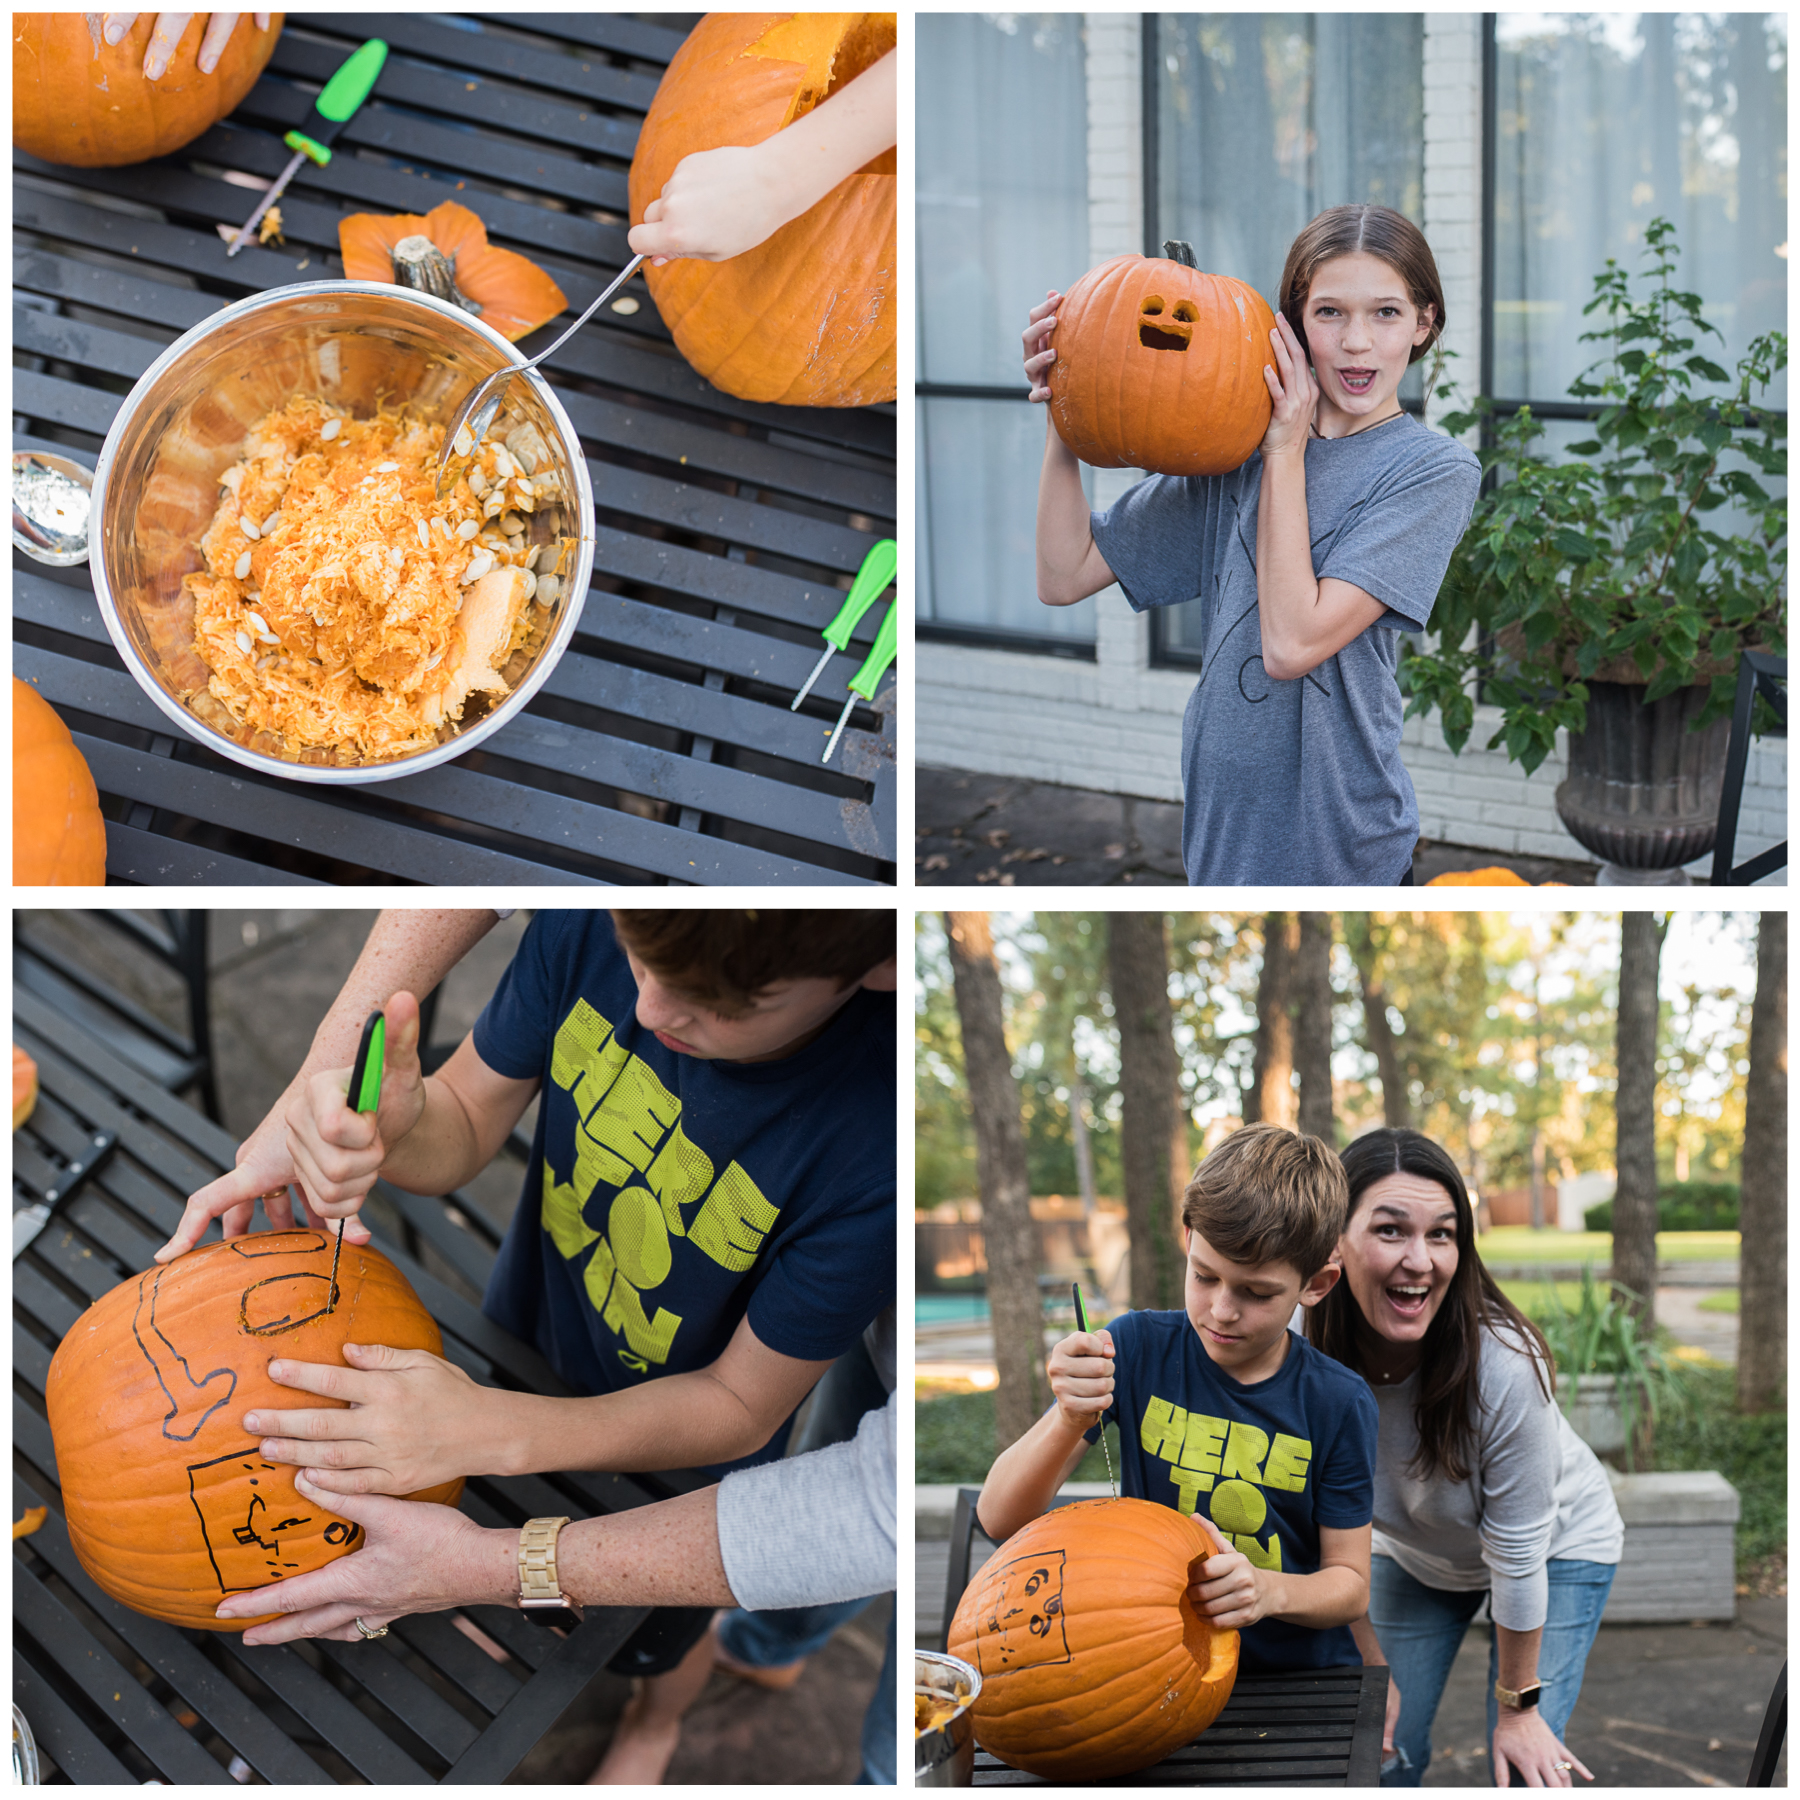 pumpkin carving.jpg